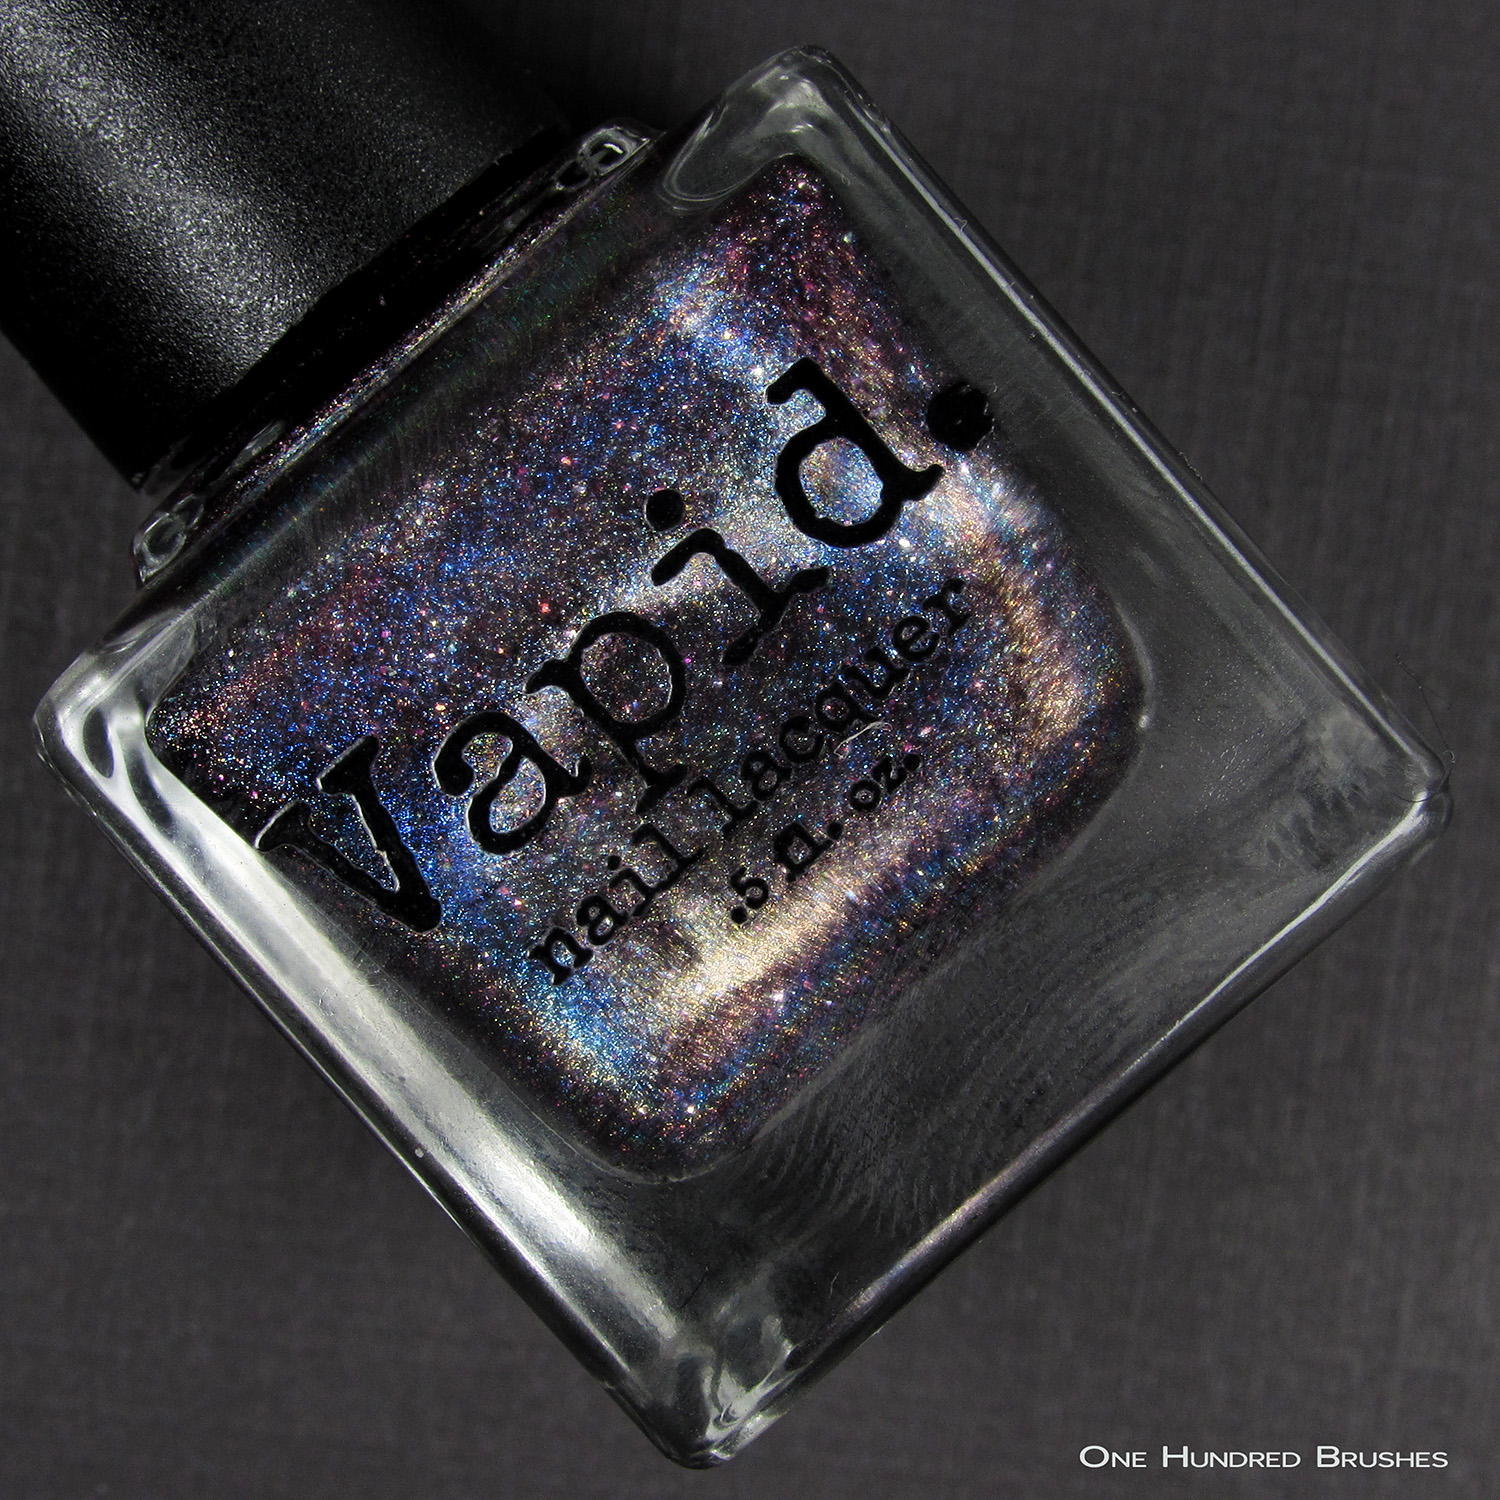 Dark Twisted Fantasies X - Vapid Lacquer Sep 2018